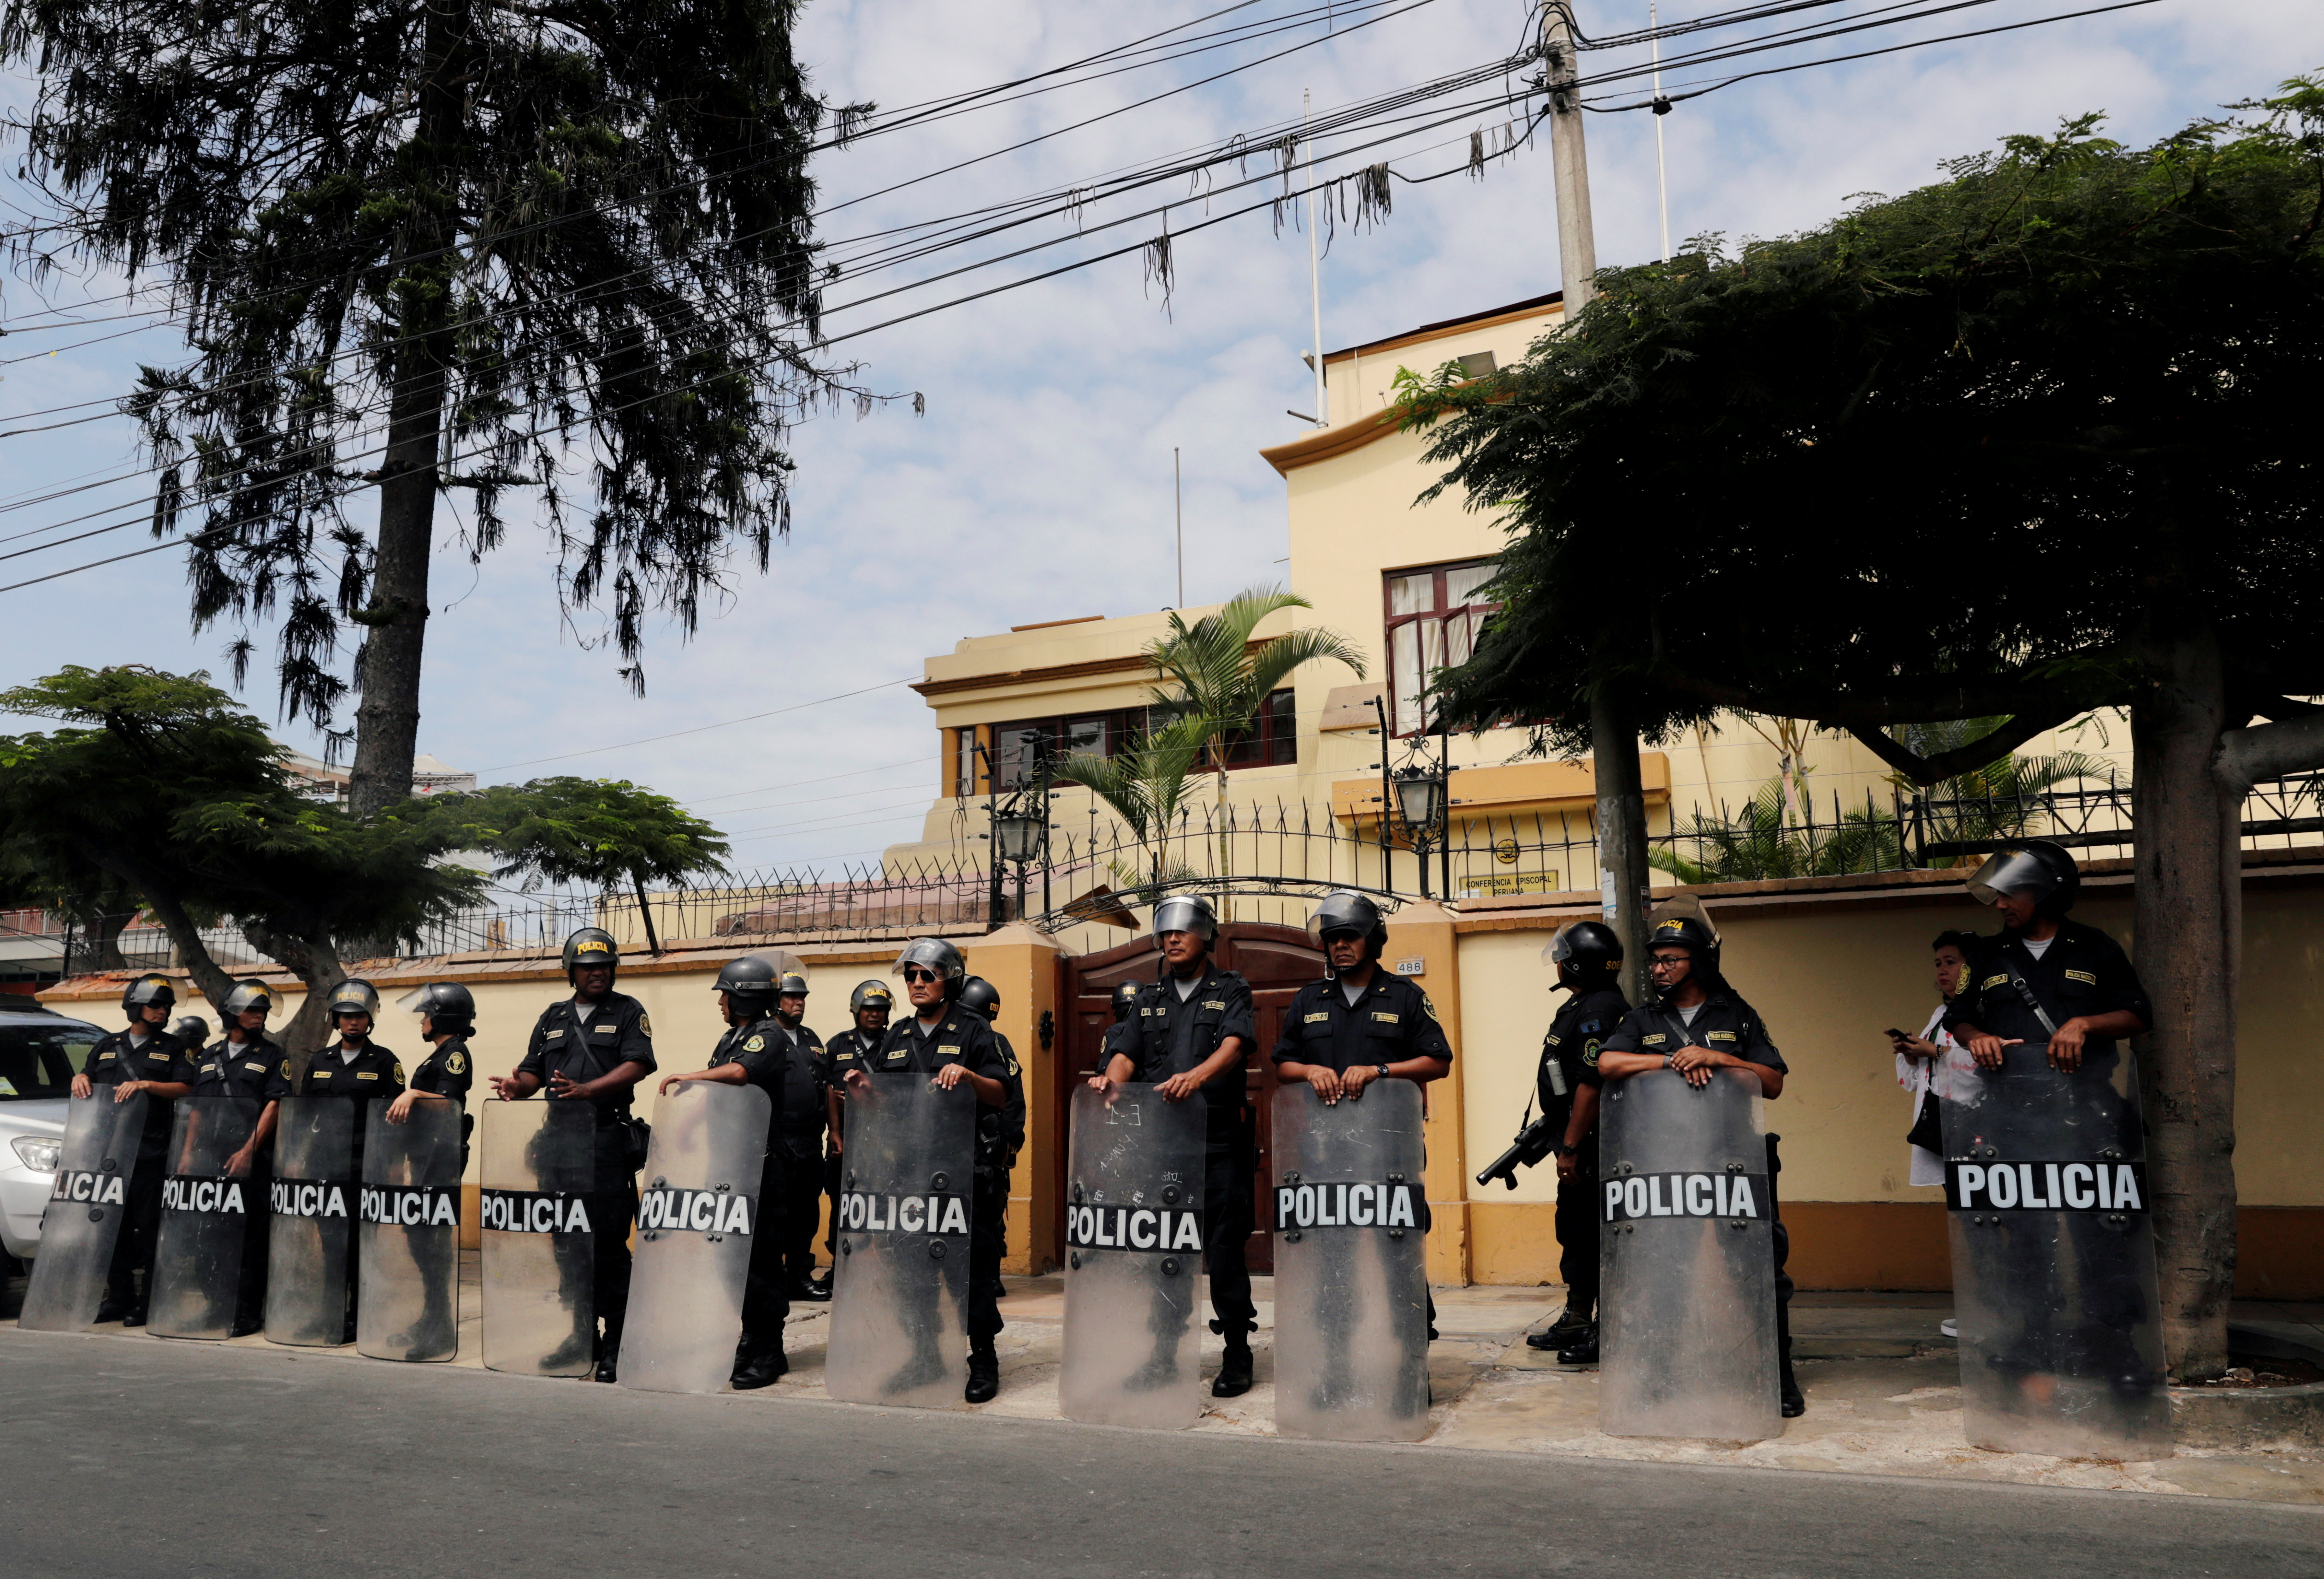 Police officers stand guard outside at the Episcopal Conference of Peru where Gregorio Rojas, president of the community Fuerabamba, Chinese-owned miner MMG Ltd, the Peruvian government and the Catholic Church take part in negotiations, aimed at ending a dispute with an indigenous community that has blocked roads to the company's Las Bambas mine, in Lima, Peru April 6, 2019. REUTERS/Henry Romero/File Photo